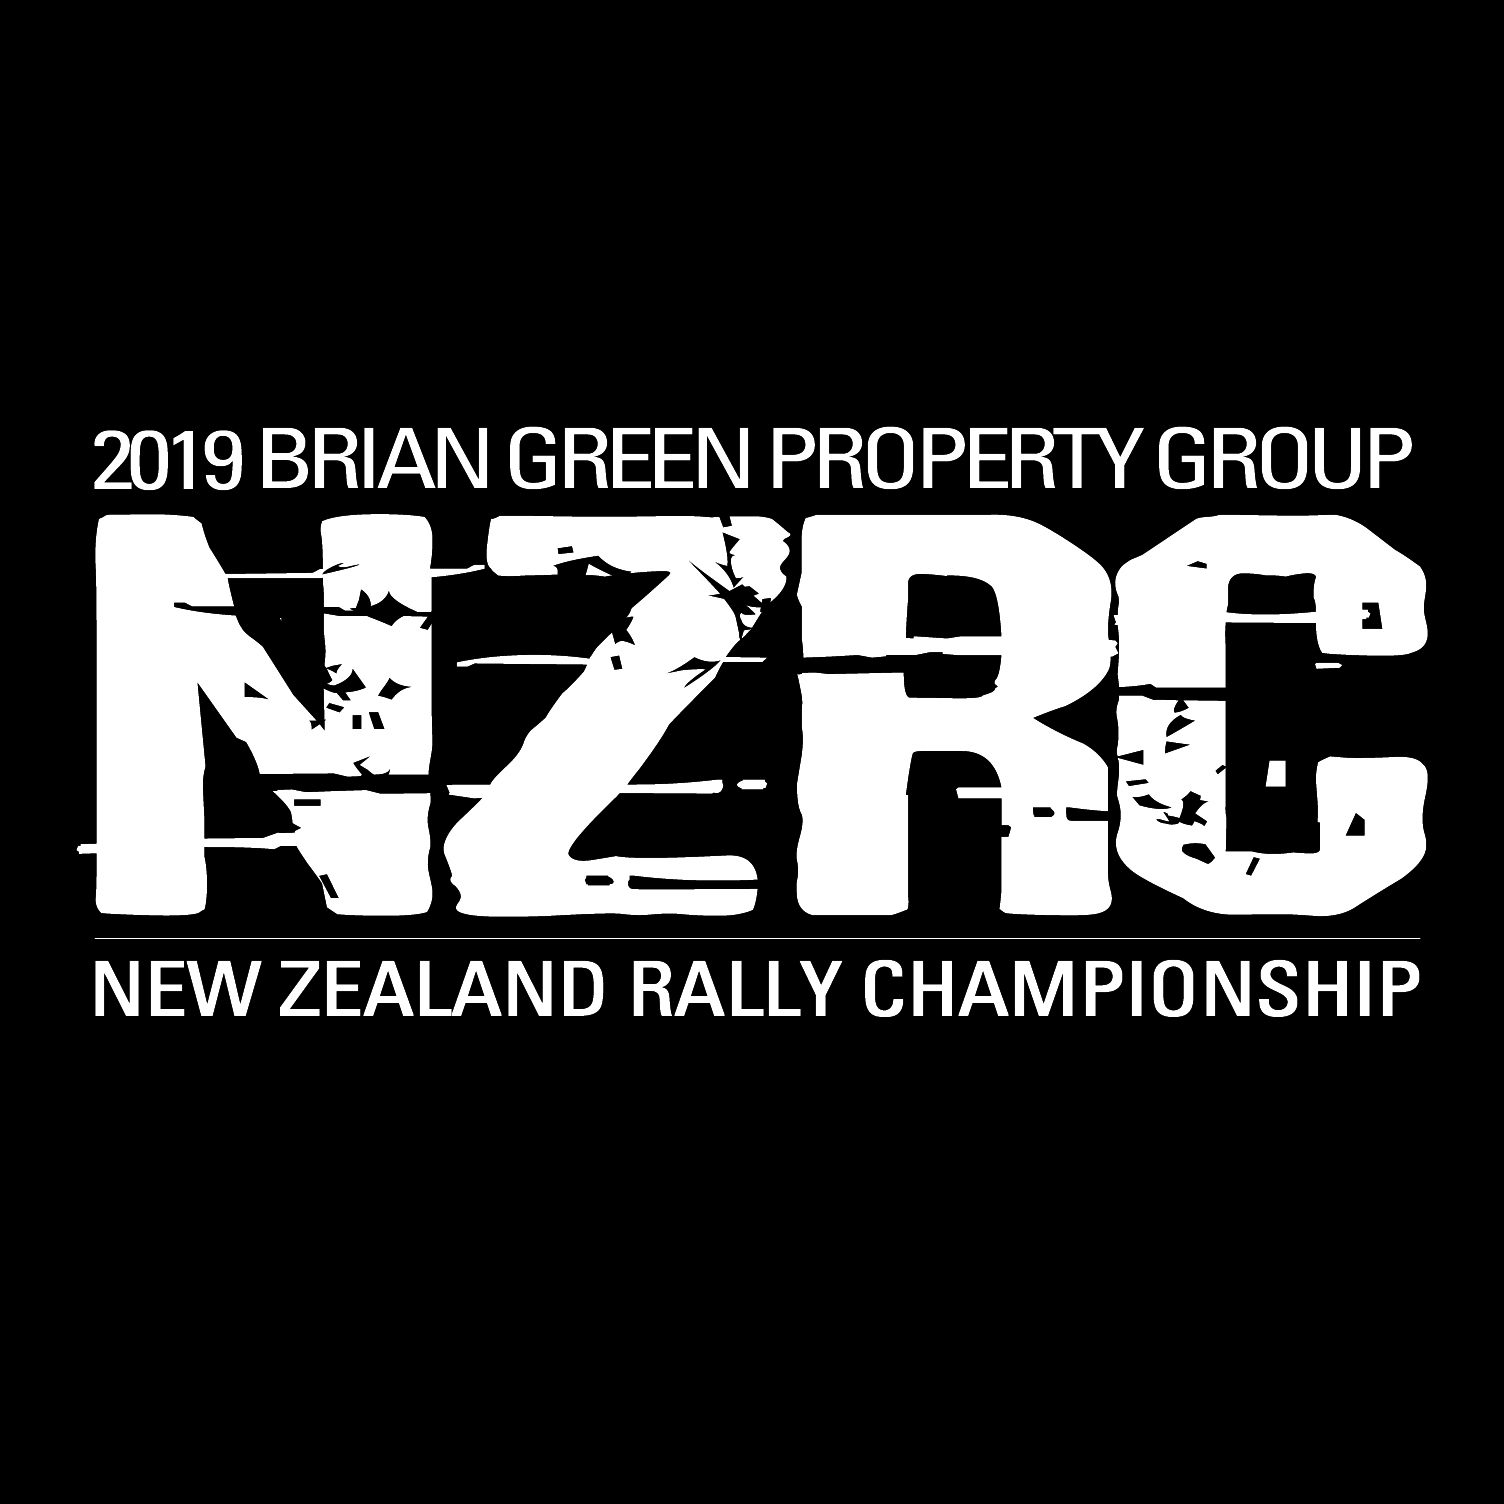 Aussie champ Nathan Quinn to make NZRC debut | :: Brian Green Property Group New Zealand Rally Championship ::